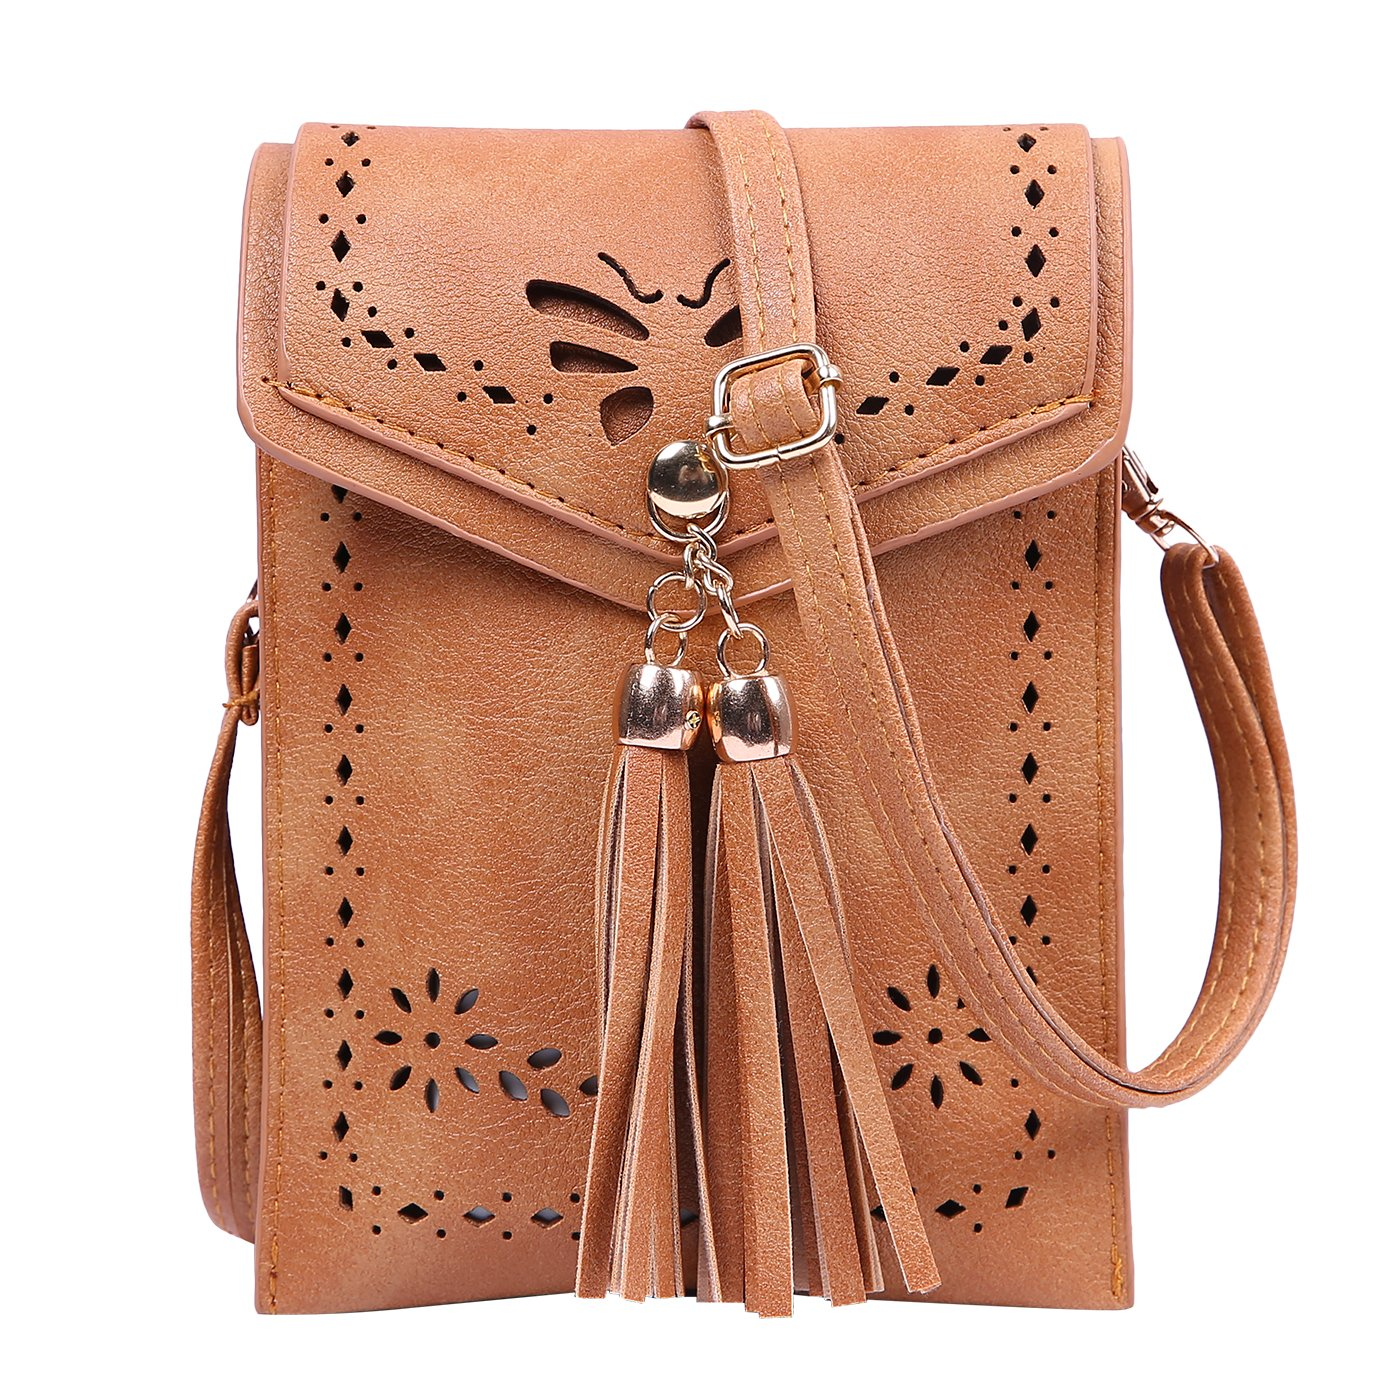 HDE Small Crossbody Pouch Purse Tassel Travel Phone Wallet Vintage Leather Bags (Brown) by HDE (Image #1)